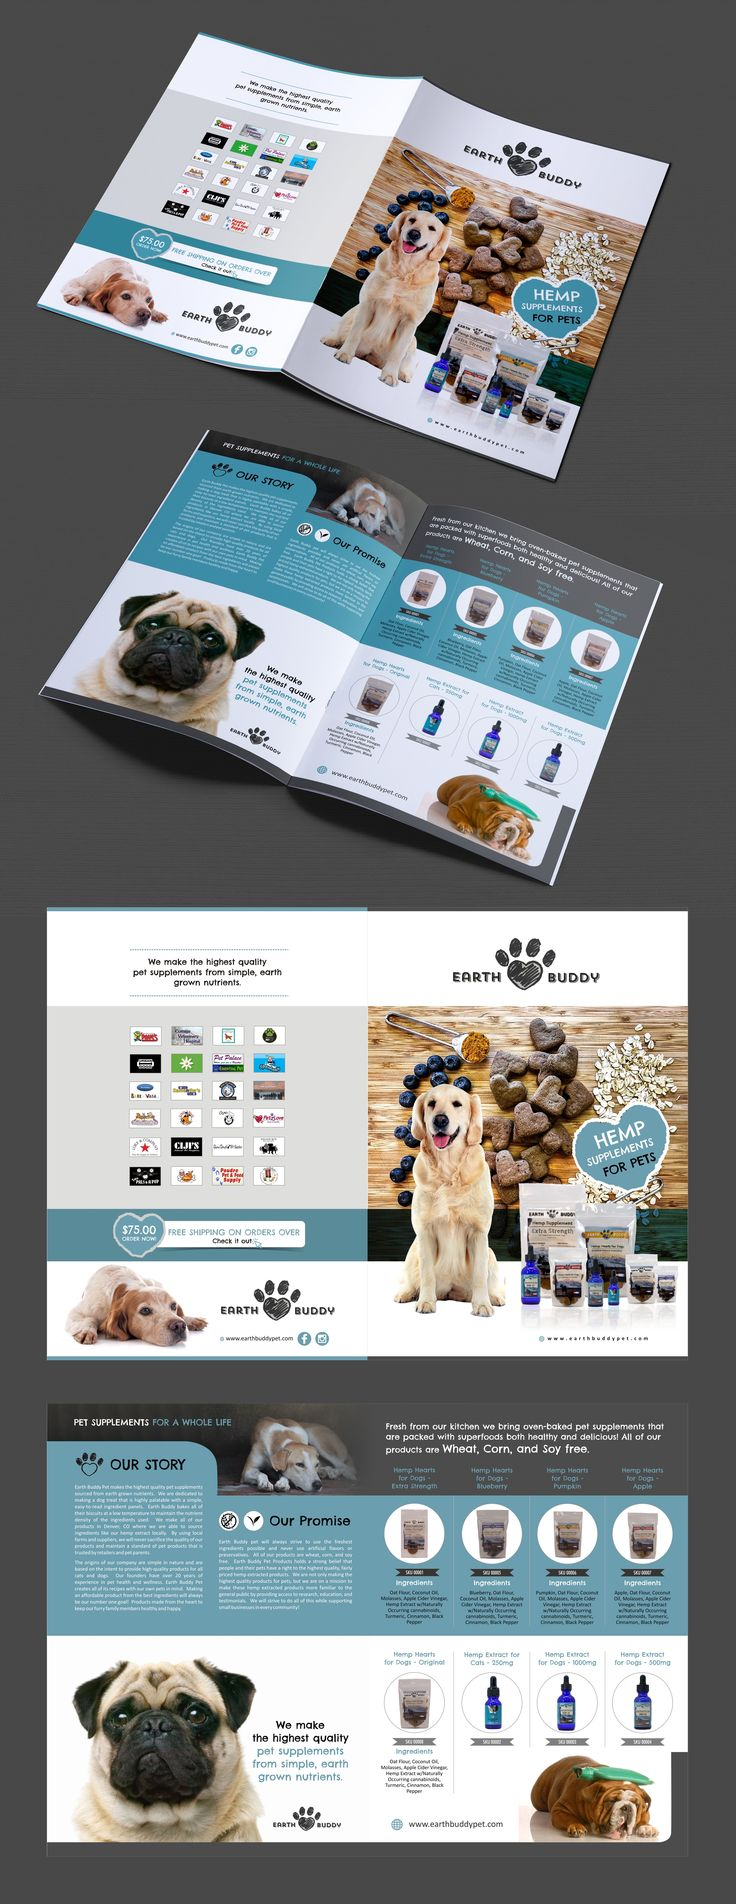 Brochure and White Paper Designs에 있는 Grafics Design님의 핀 디자인